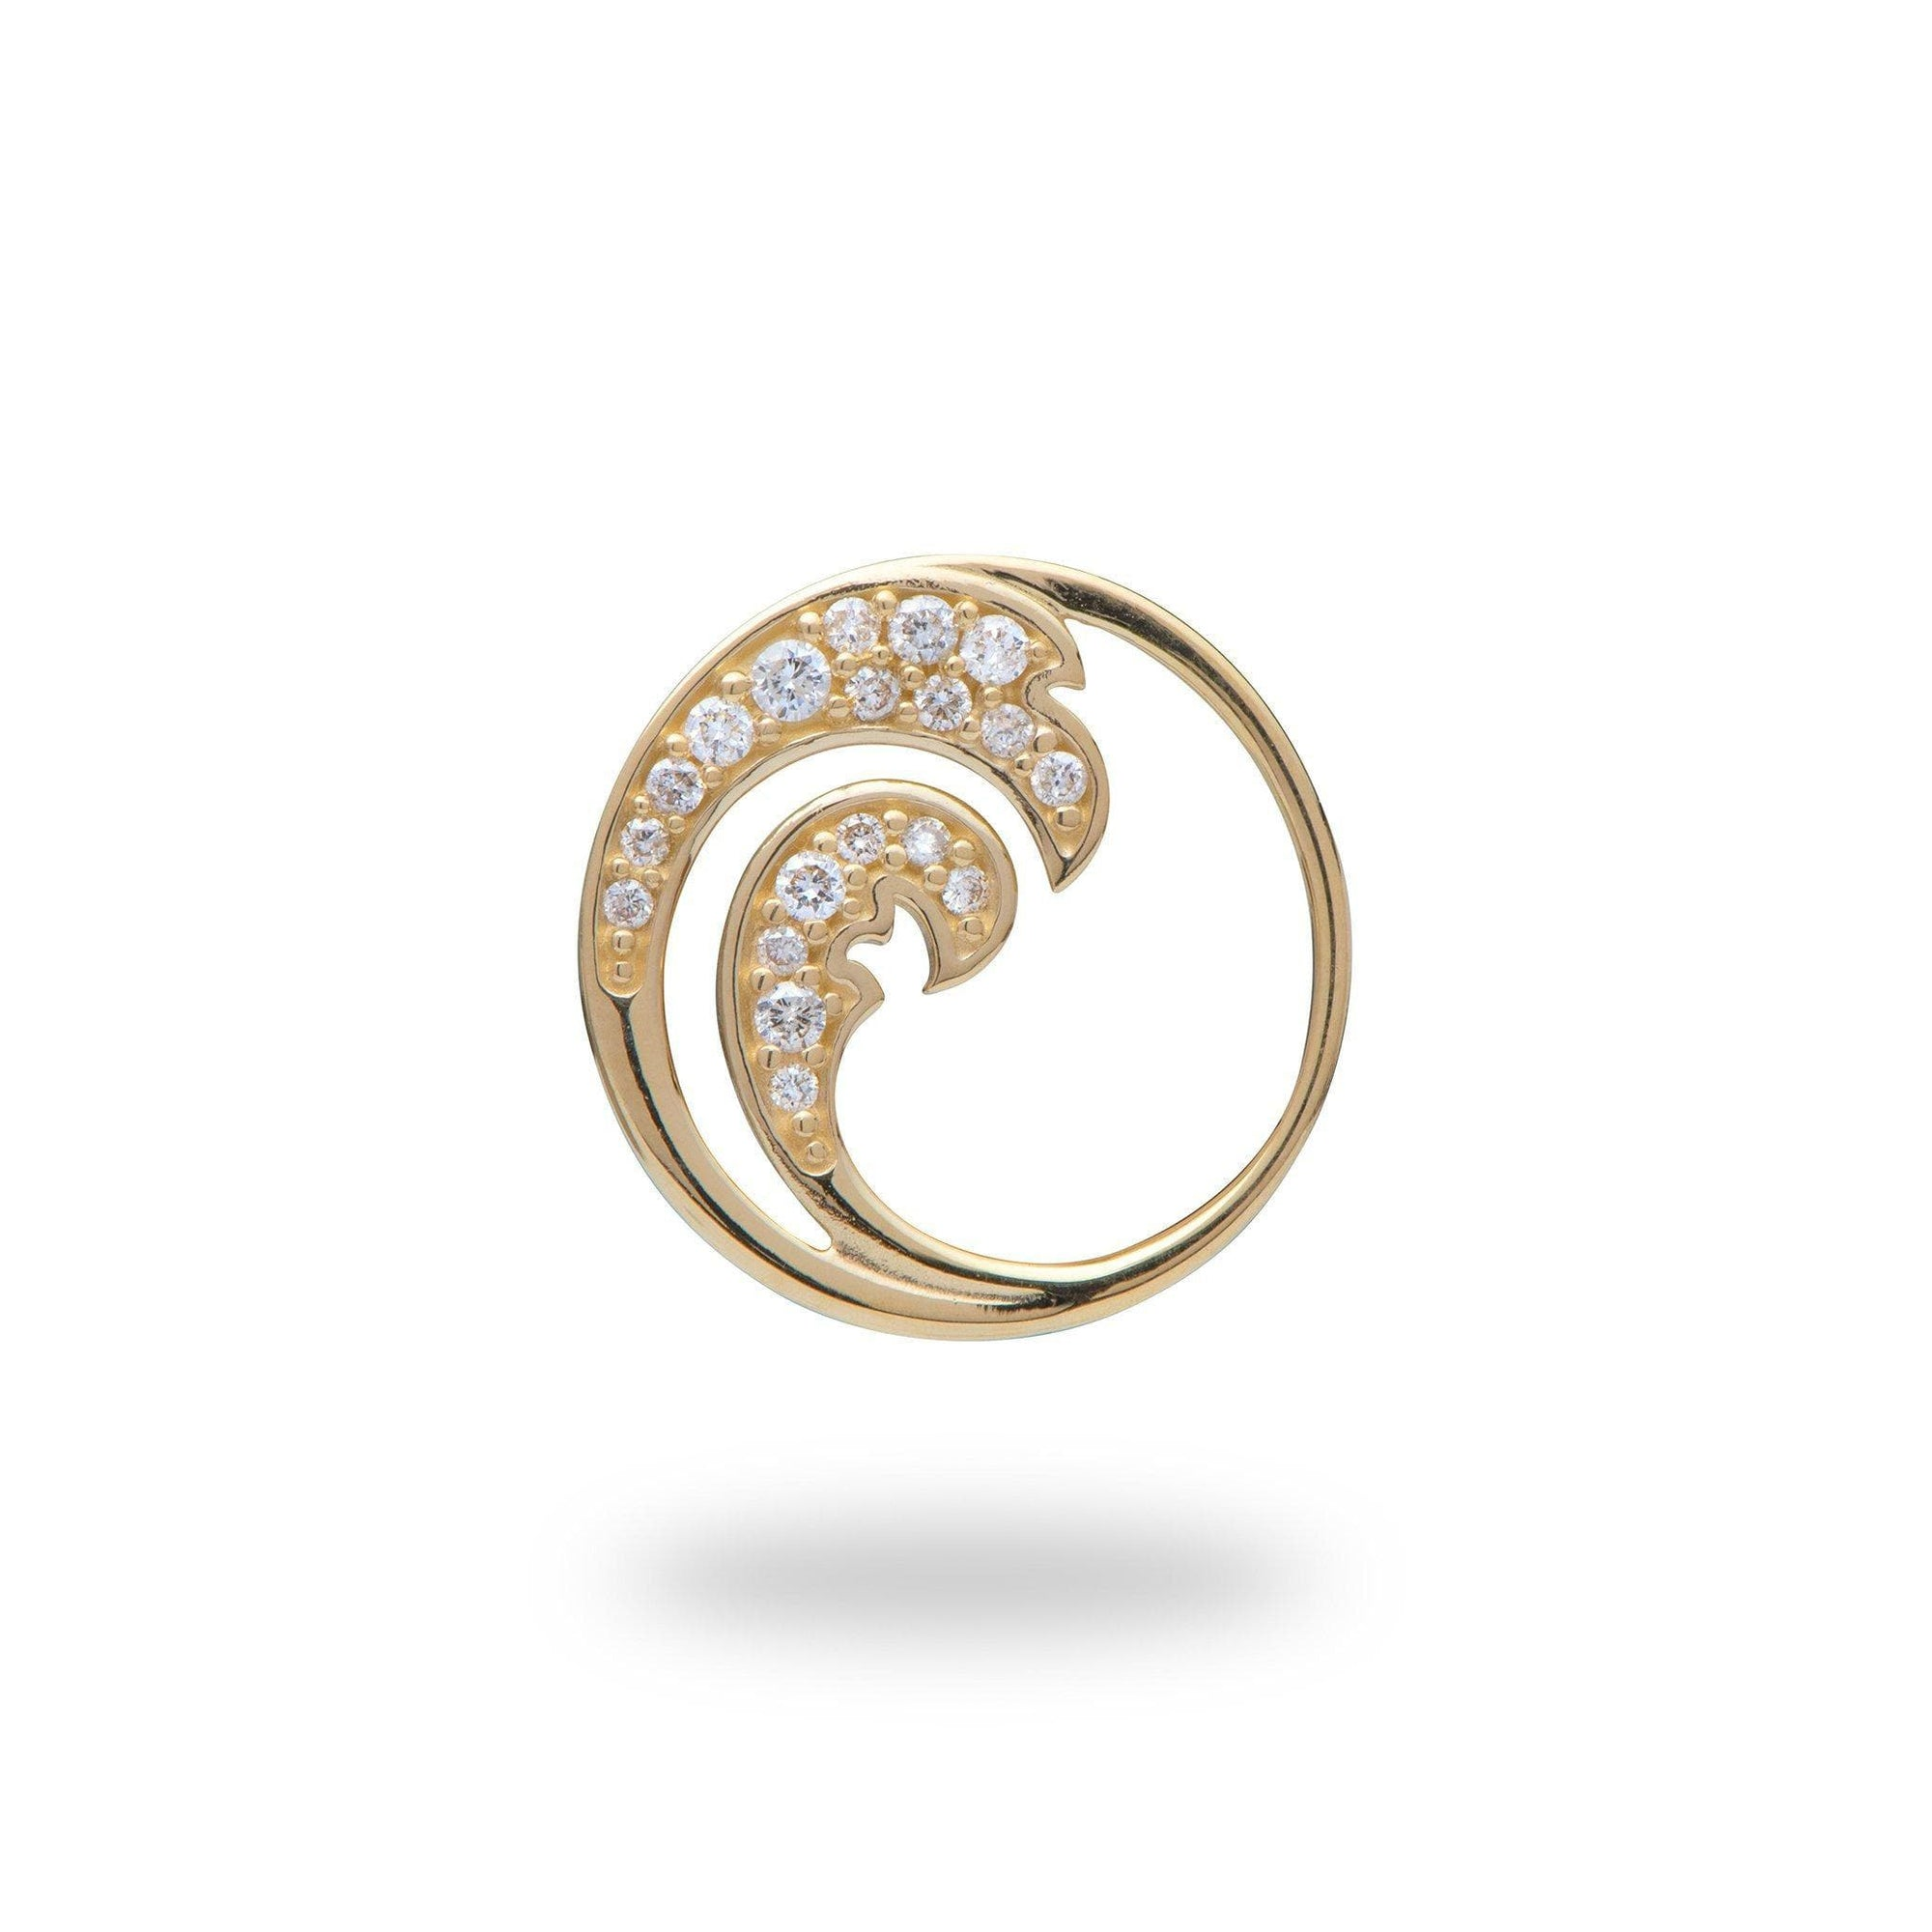 Nalu Pendant in Gold with Diamonds - 15mm - Maui Divers Jewelry